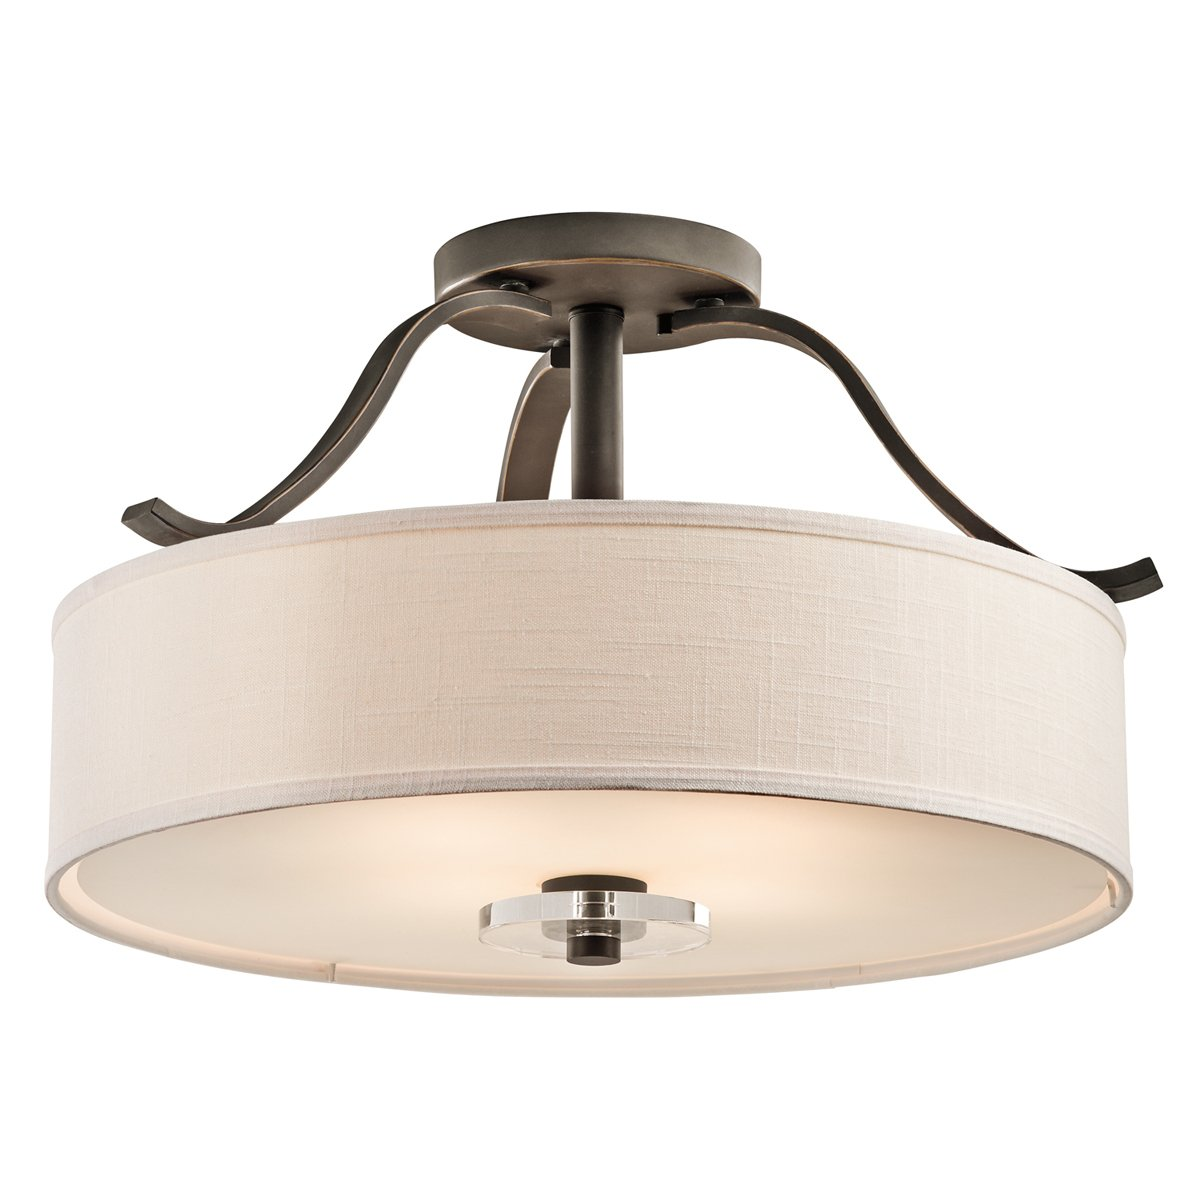 Kichler OZ Four Light Semi Flush Mount Semi Flush Mount